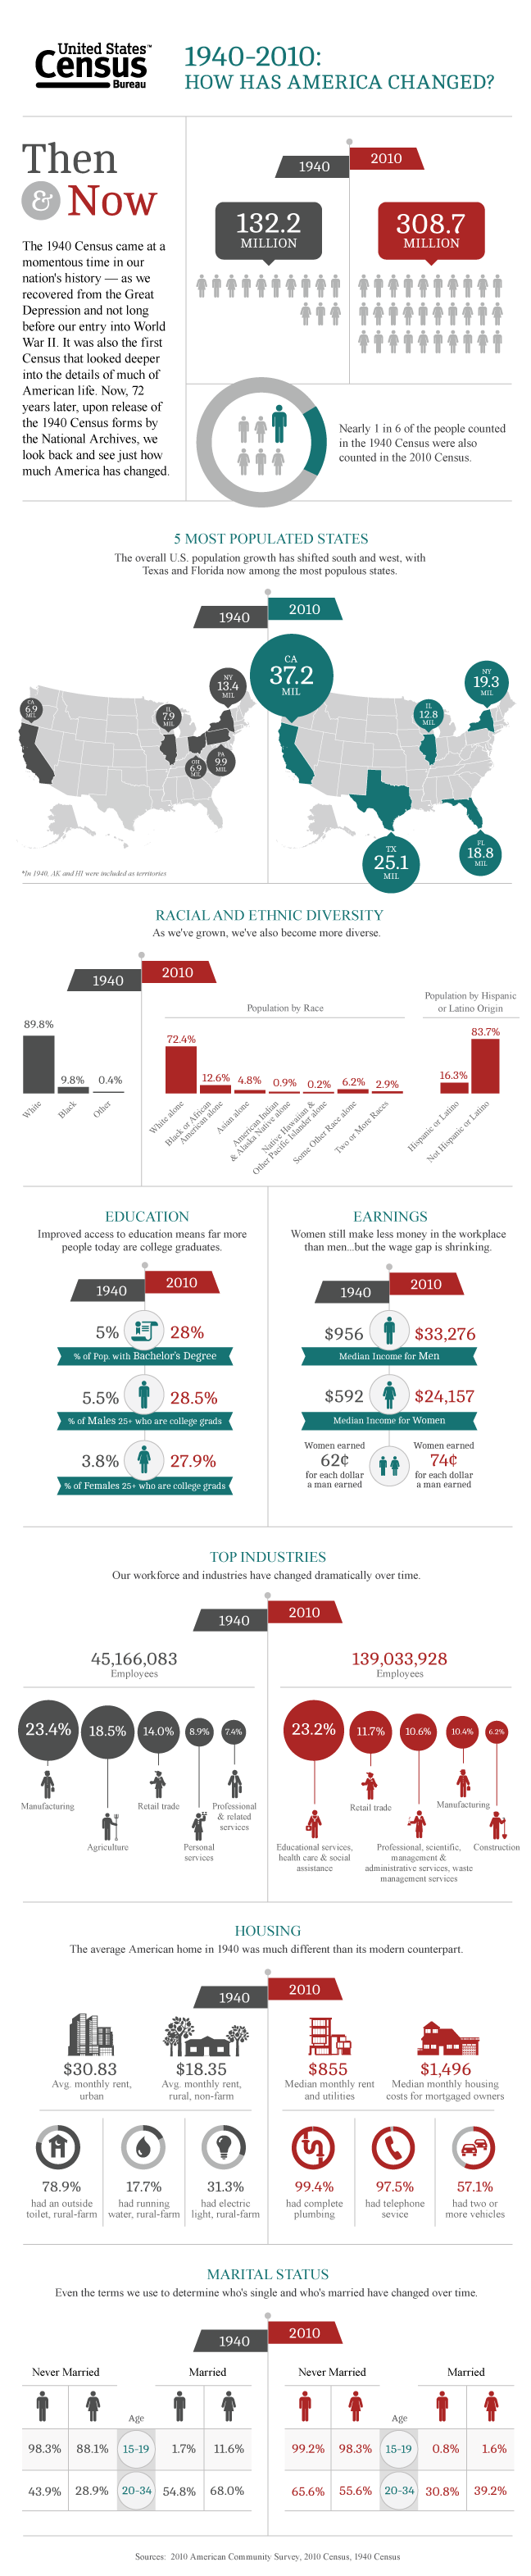 2012_03_then-and-now-infographic